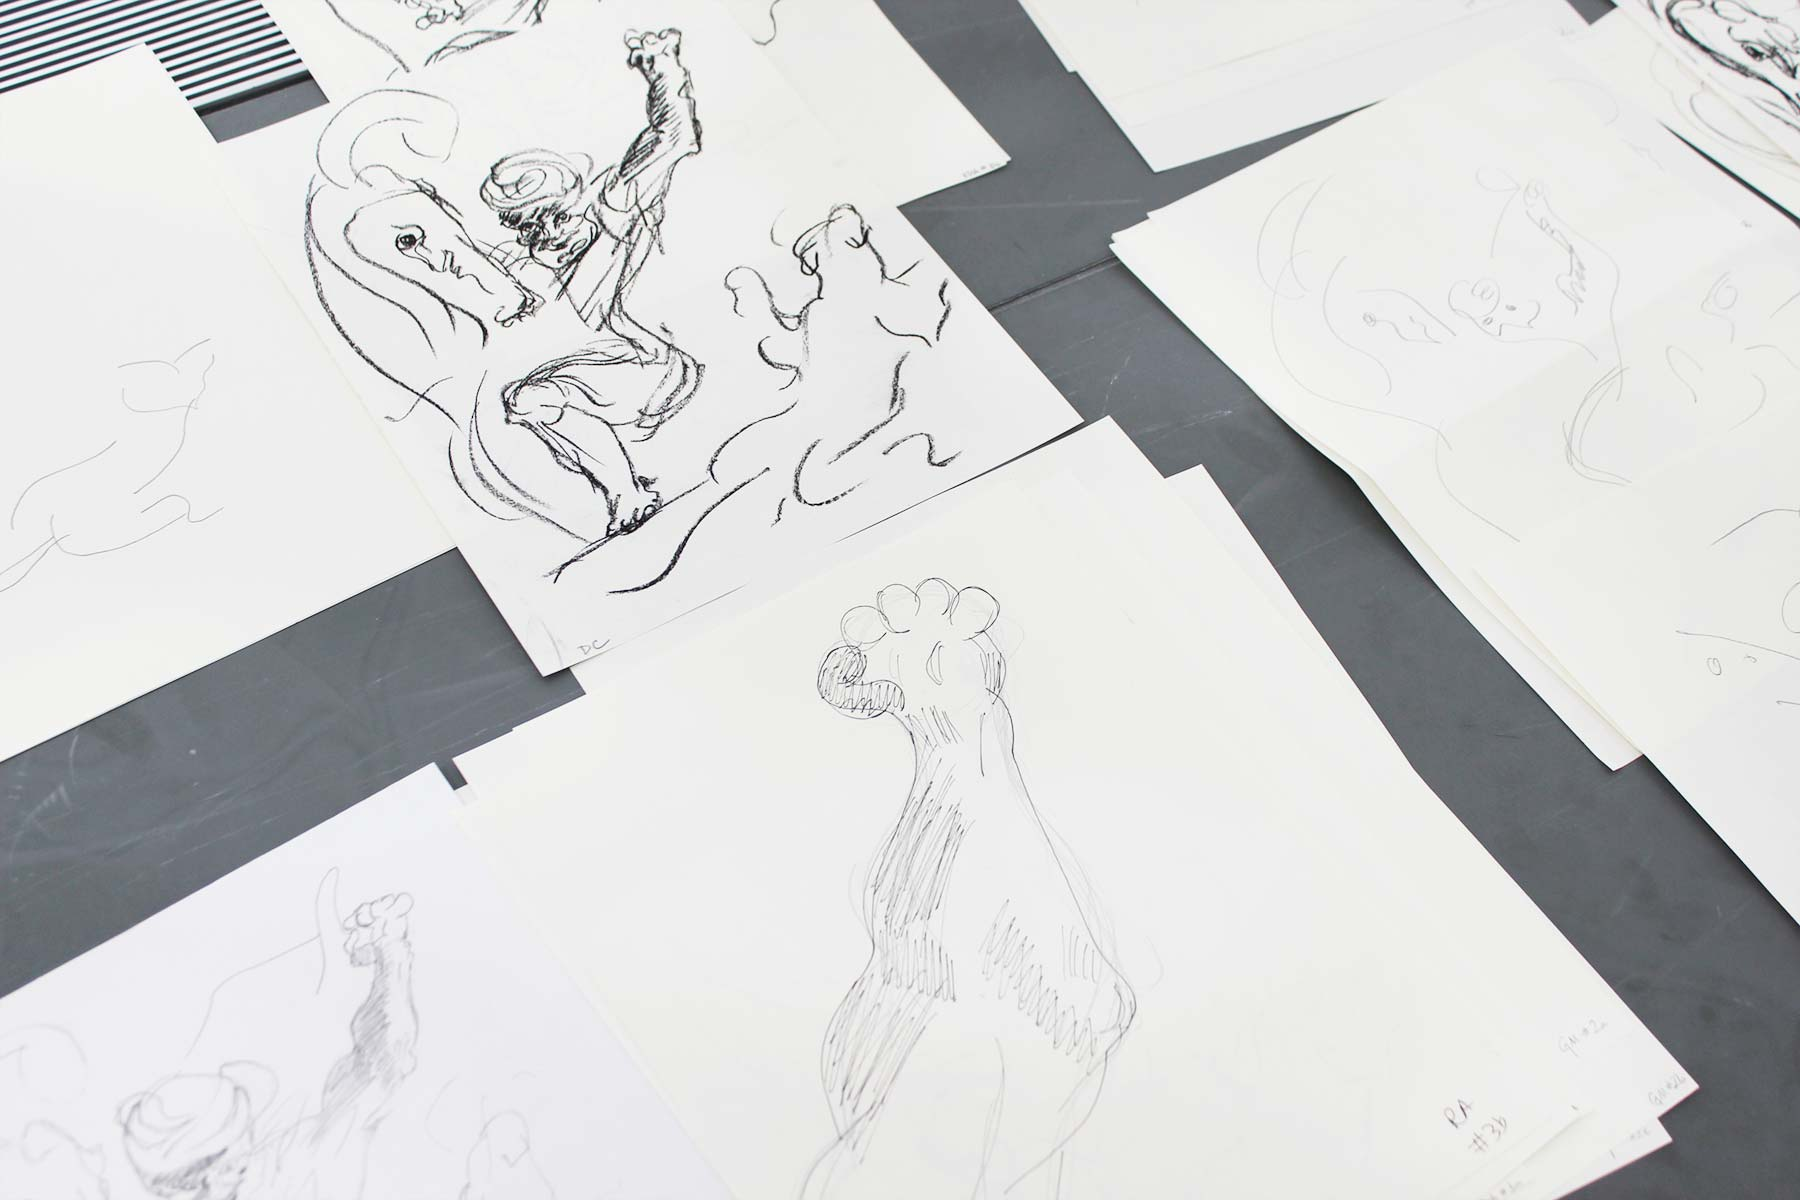 A group of overlaid drawings attempting to imitate the drawing of the man attacking the panther.